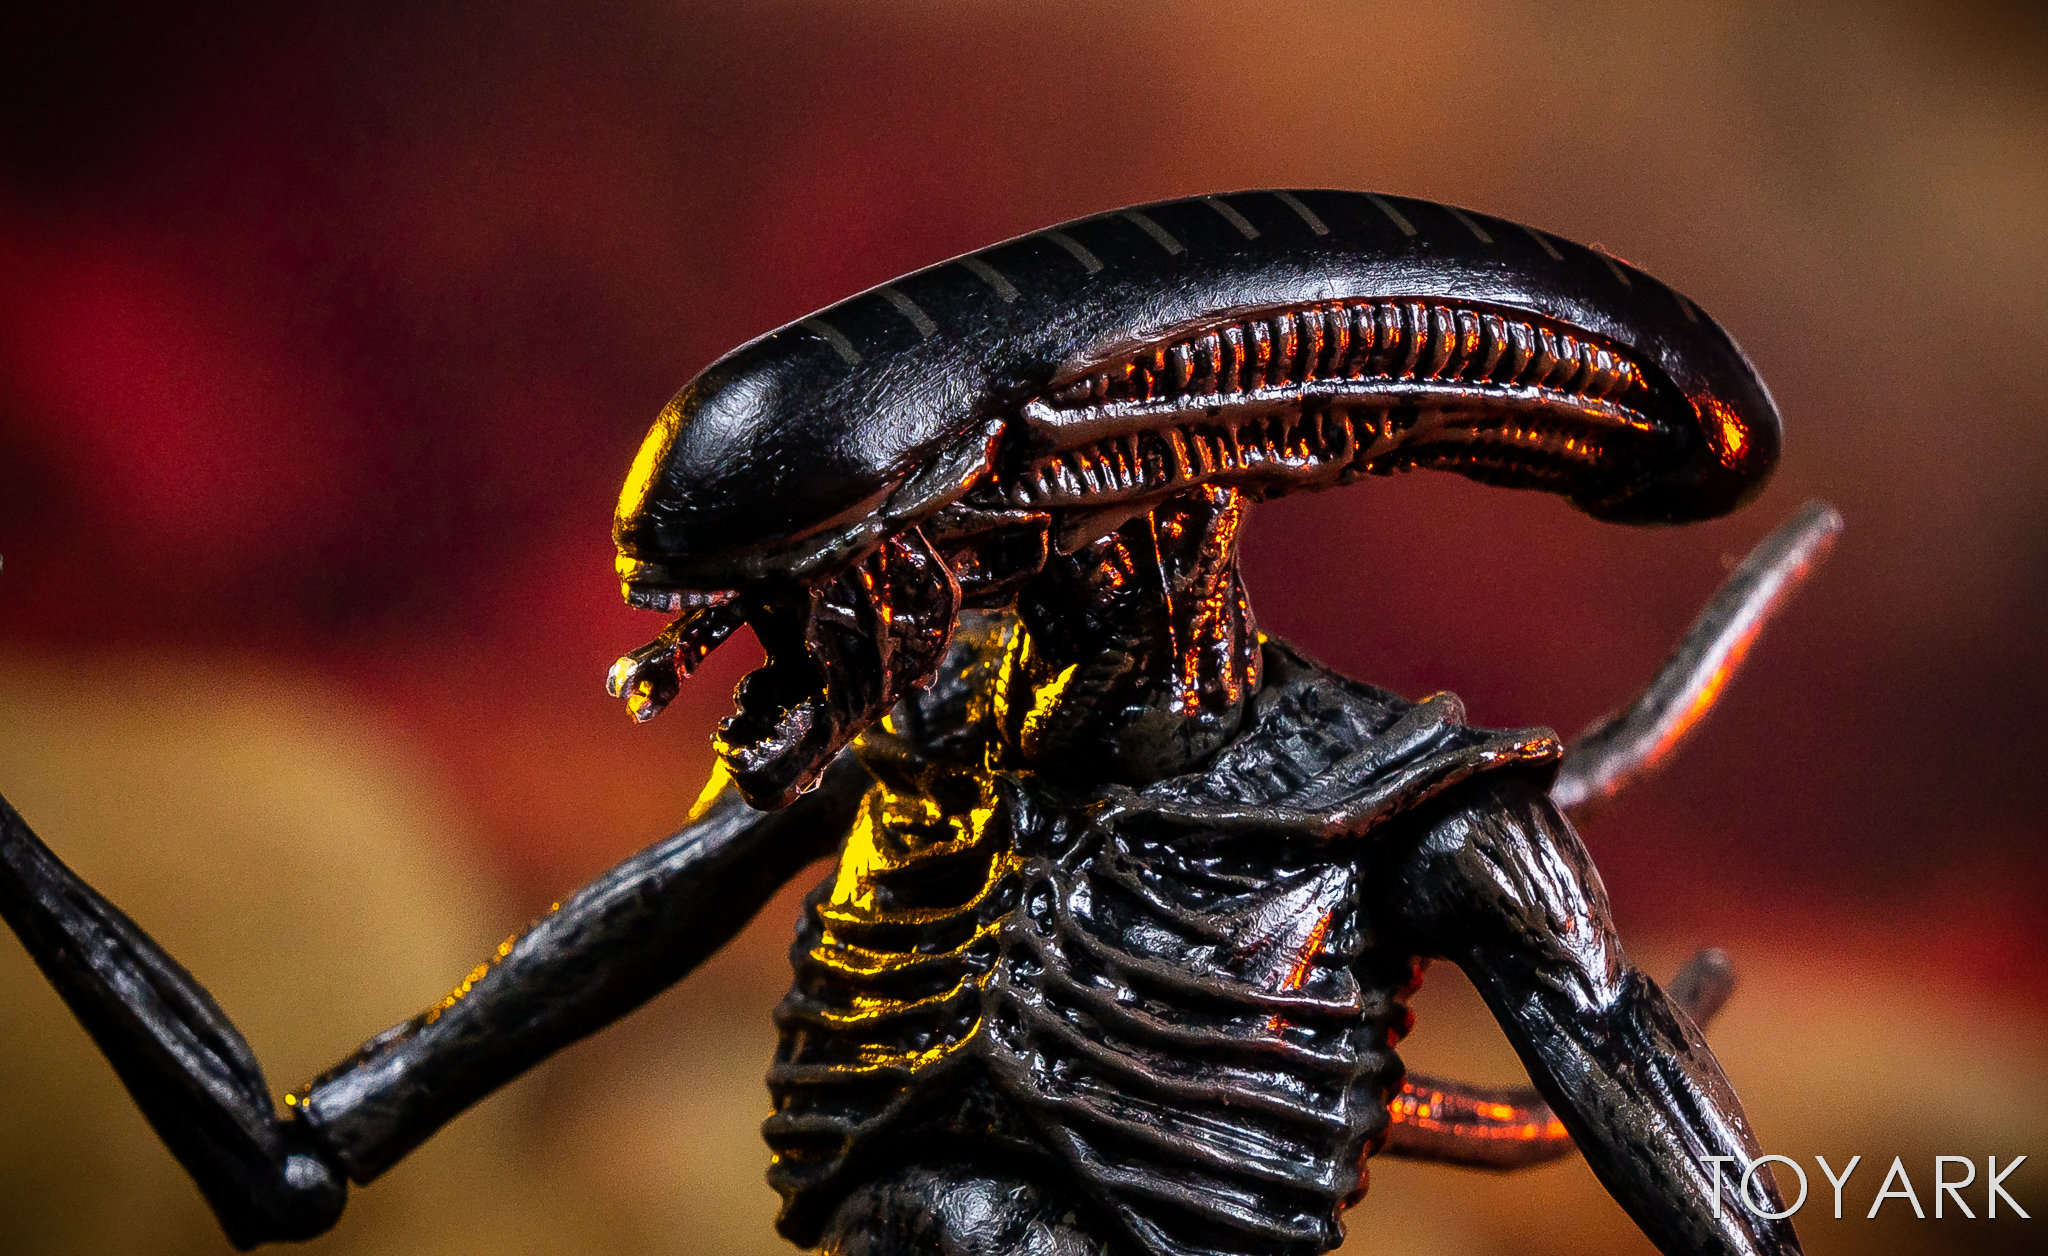 https://news.toyark.com/wp-content/uploads/sites/4/2019/02/Hiya-Toys-Alien-Covenant-Figures-035.jpg